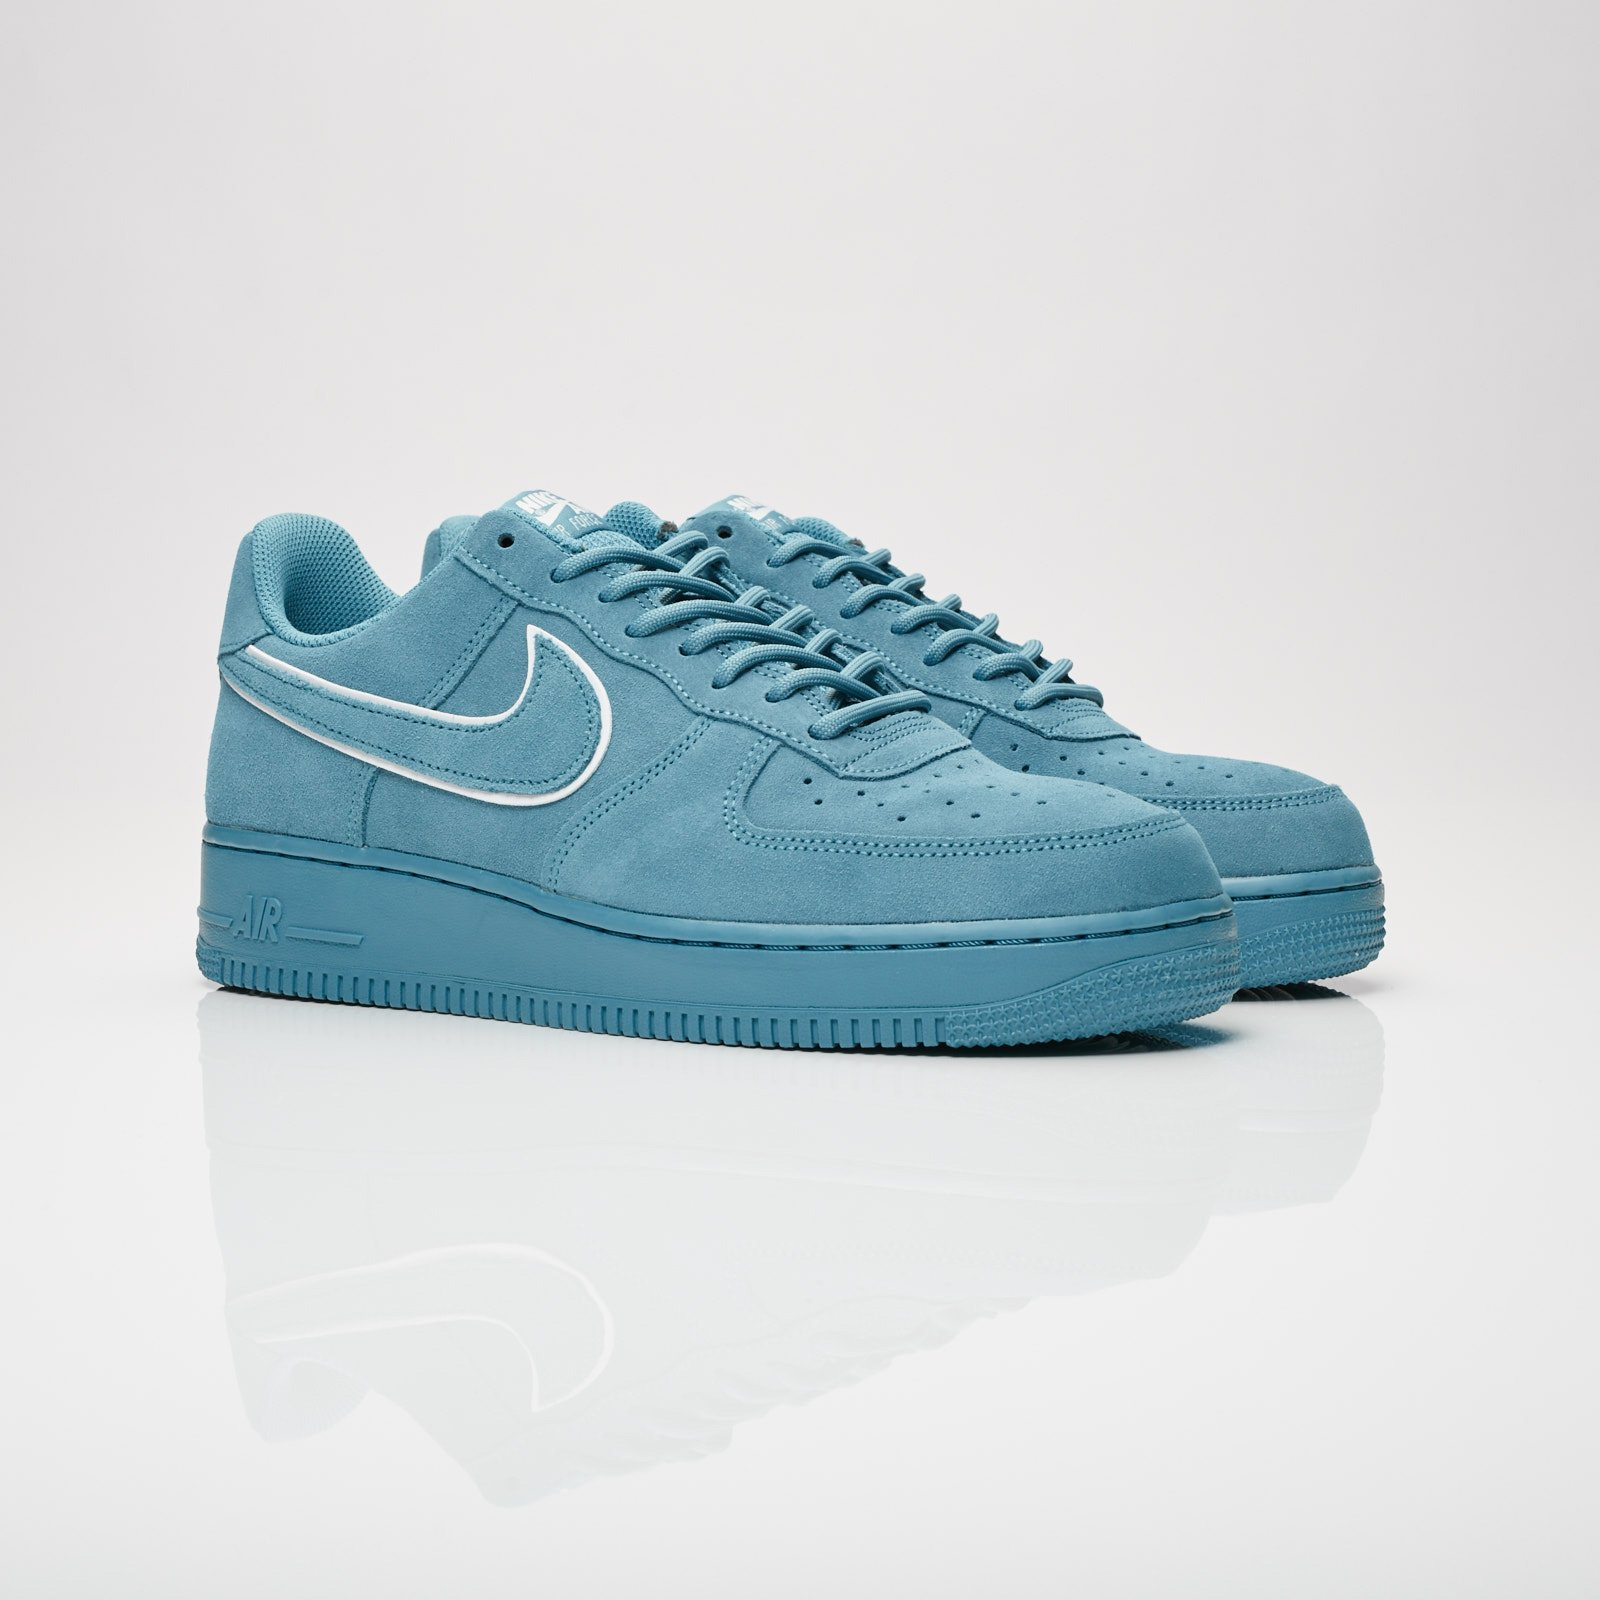 NIKE AIR FORCE 1 07 lv8 Suede Pack Noise AquaBlue Force Aa1117 400 men sz 8 13